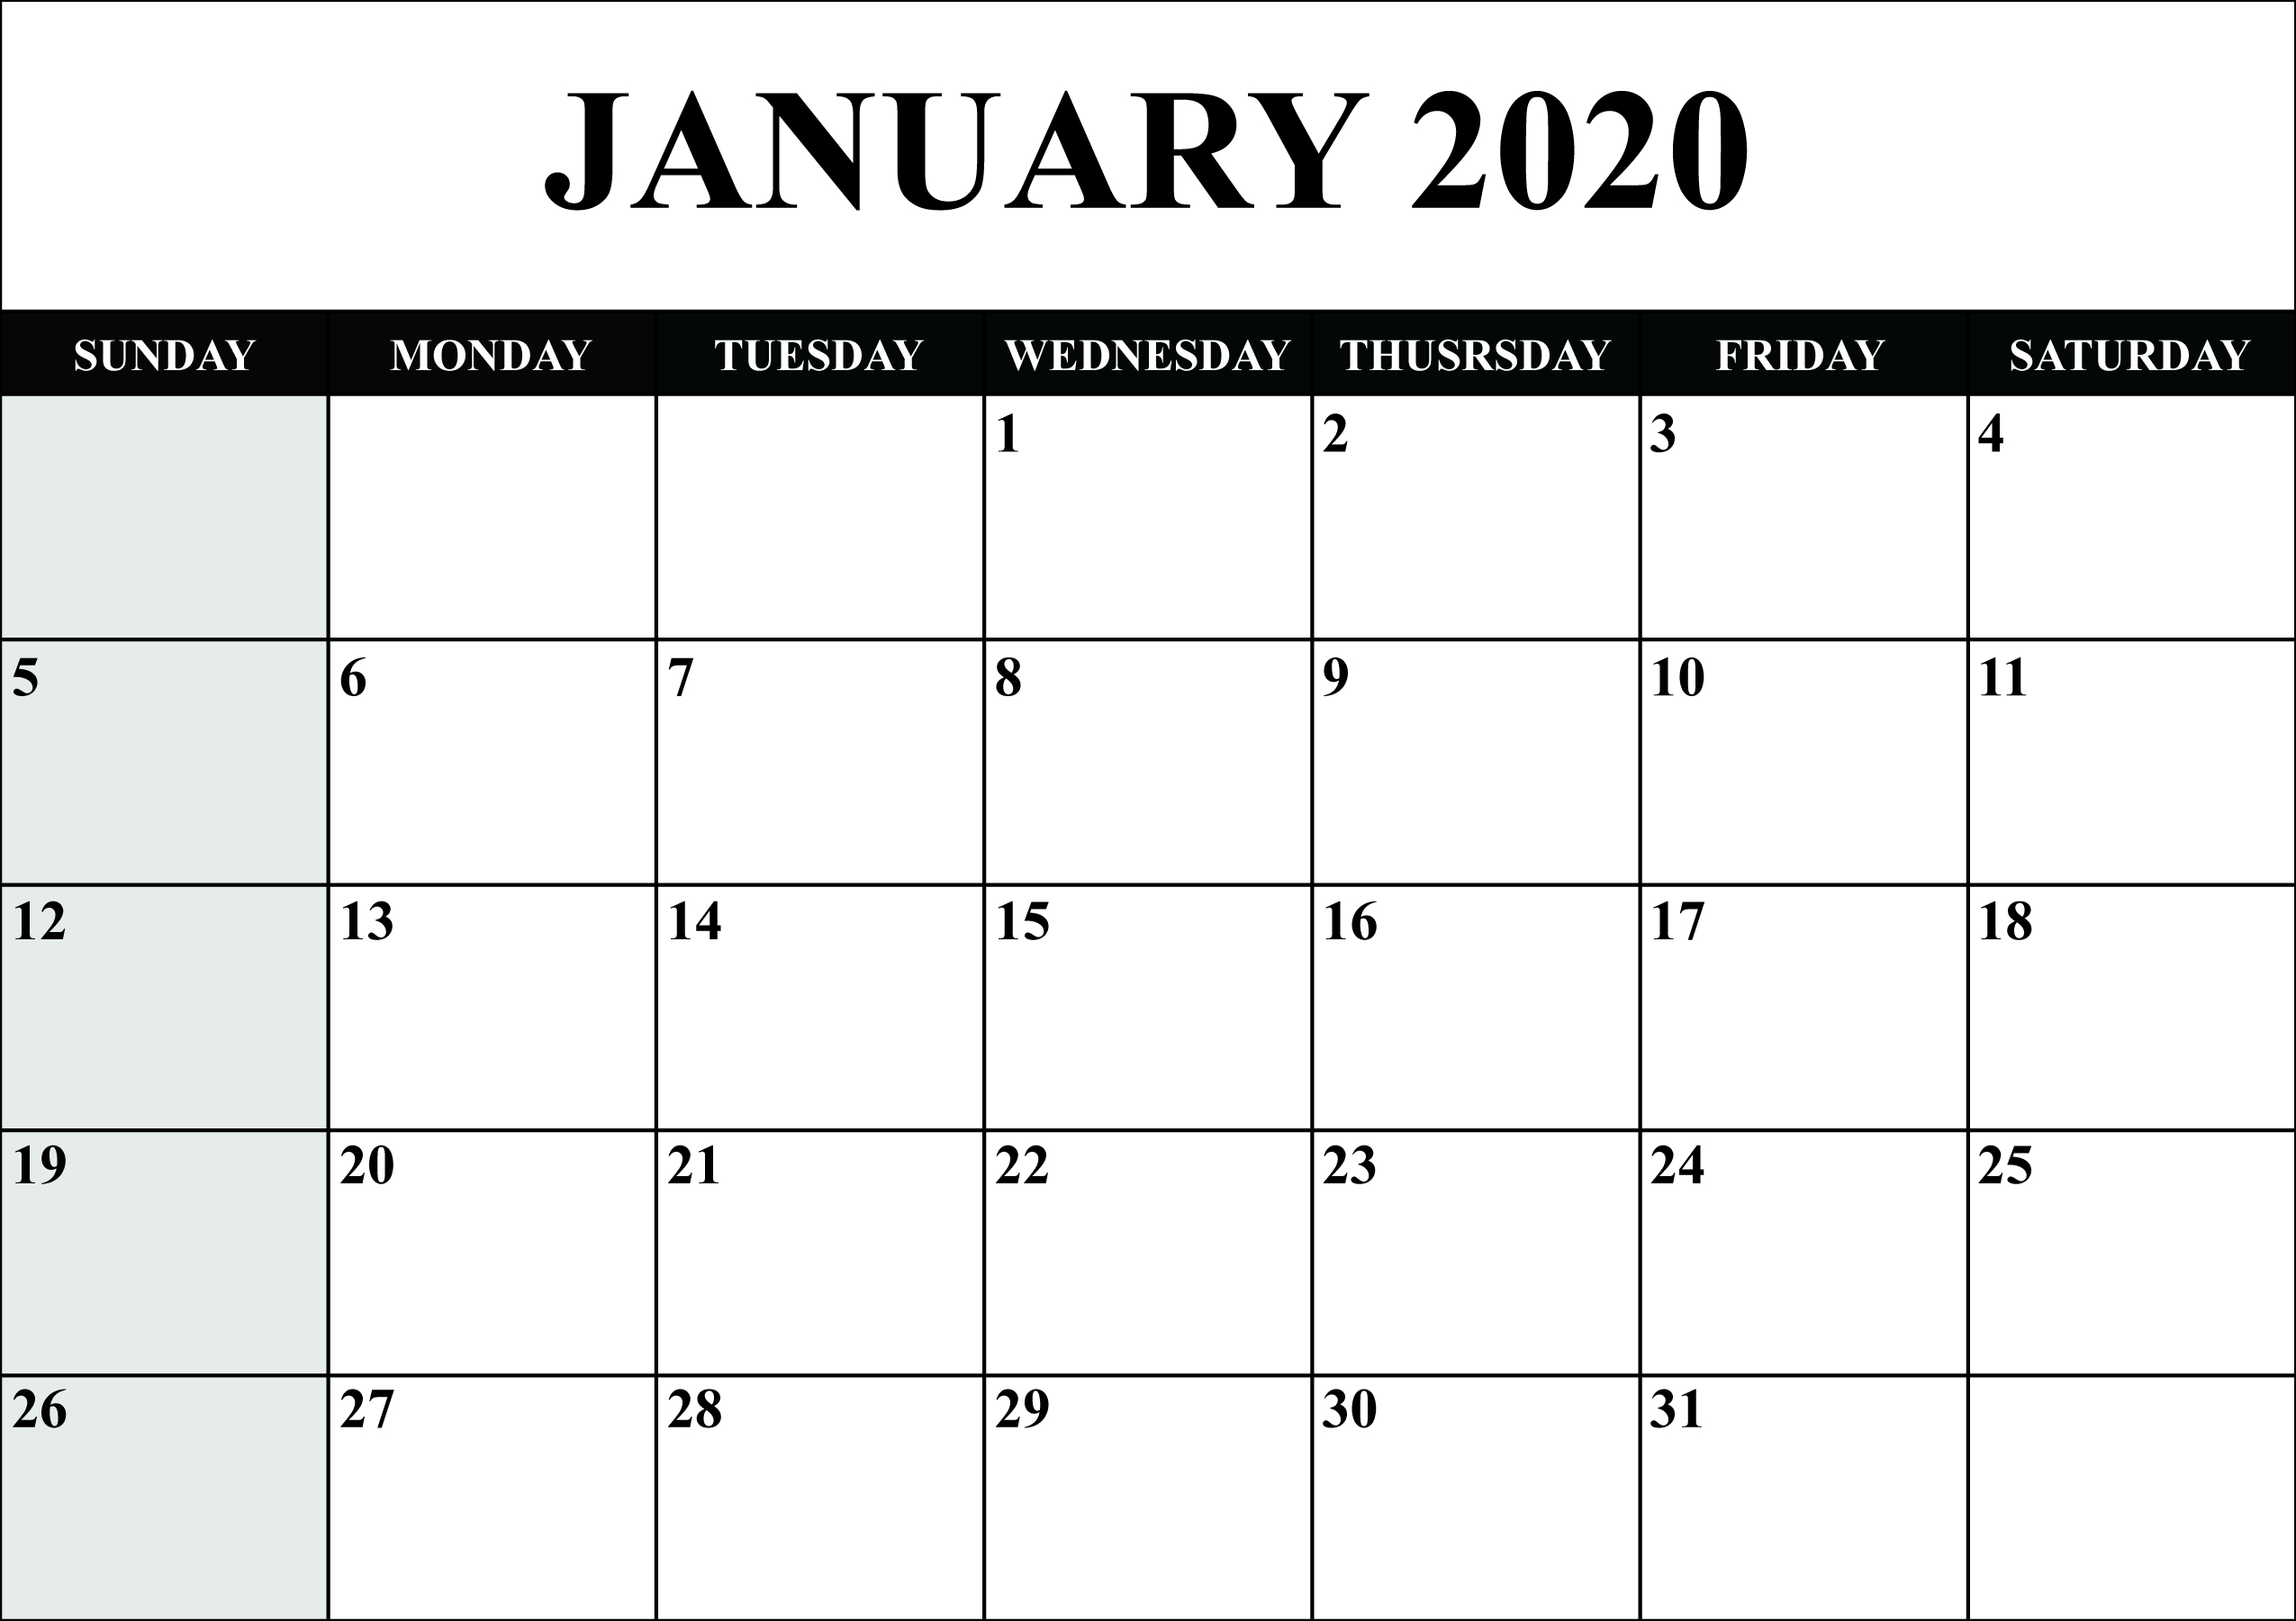 Free Blank January 2020 Calendar Printable In Pdf, Word, Excel within 2020 Printable Calendar Free That Start With Monday